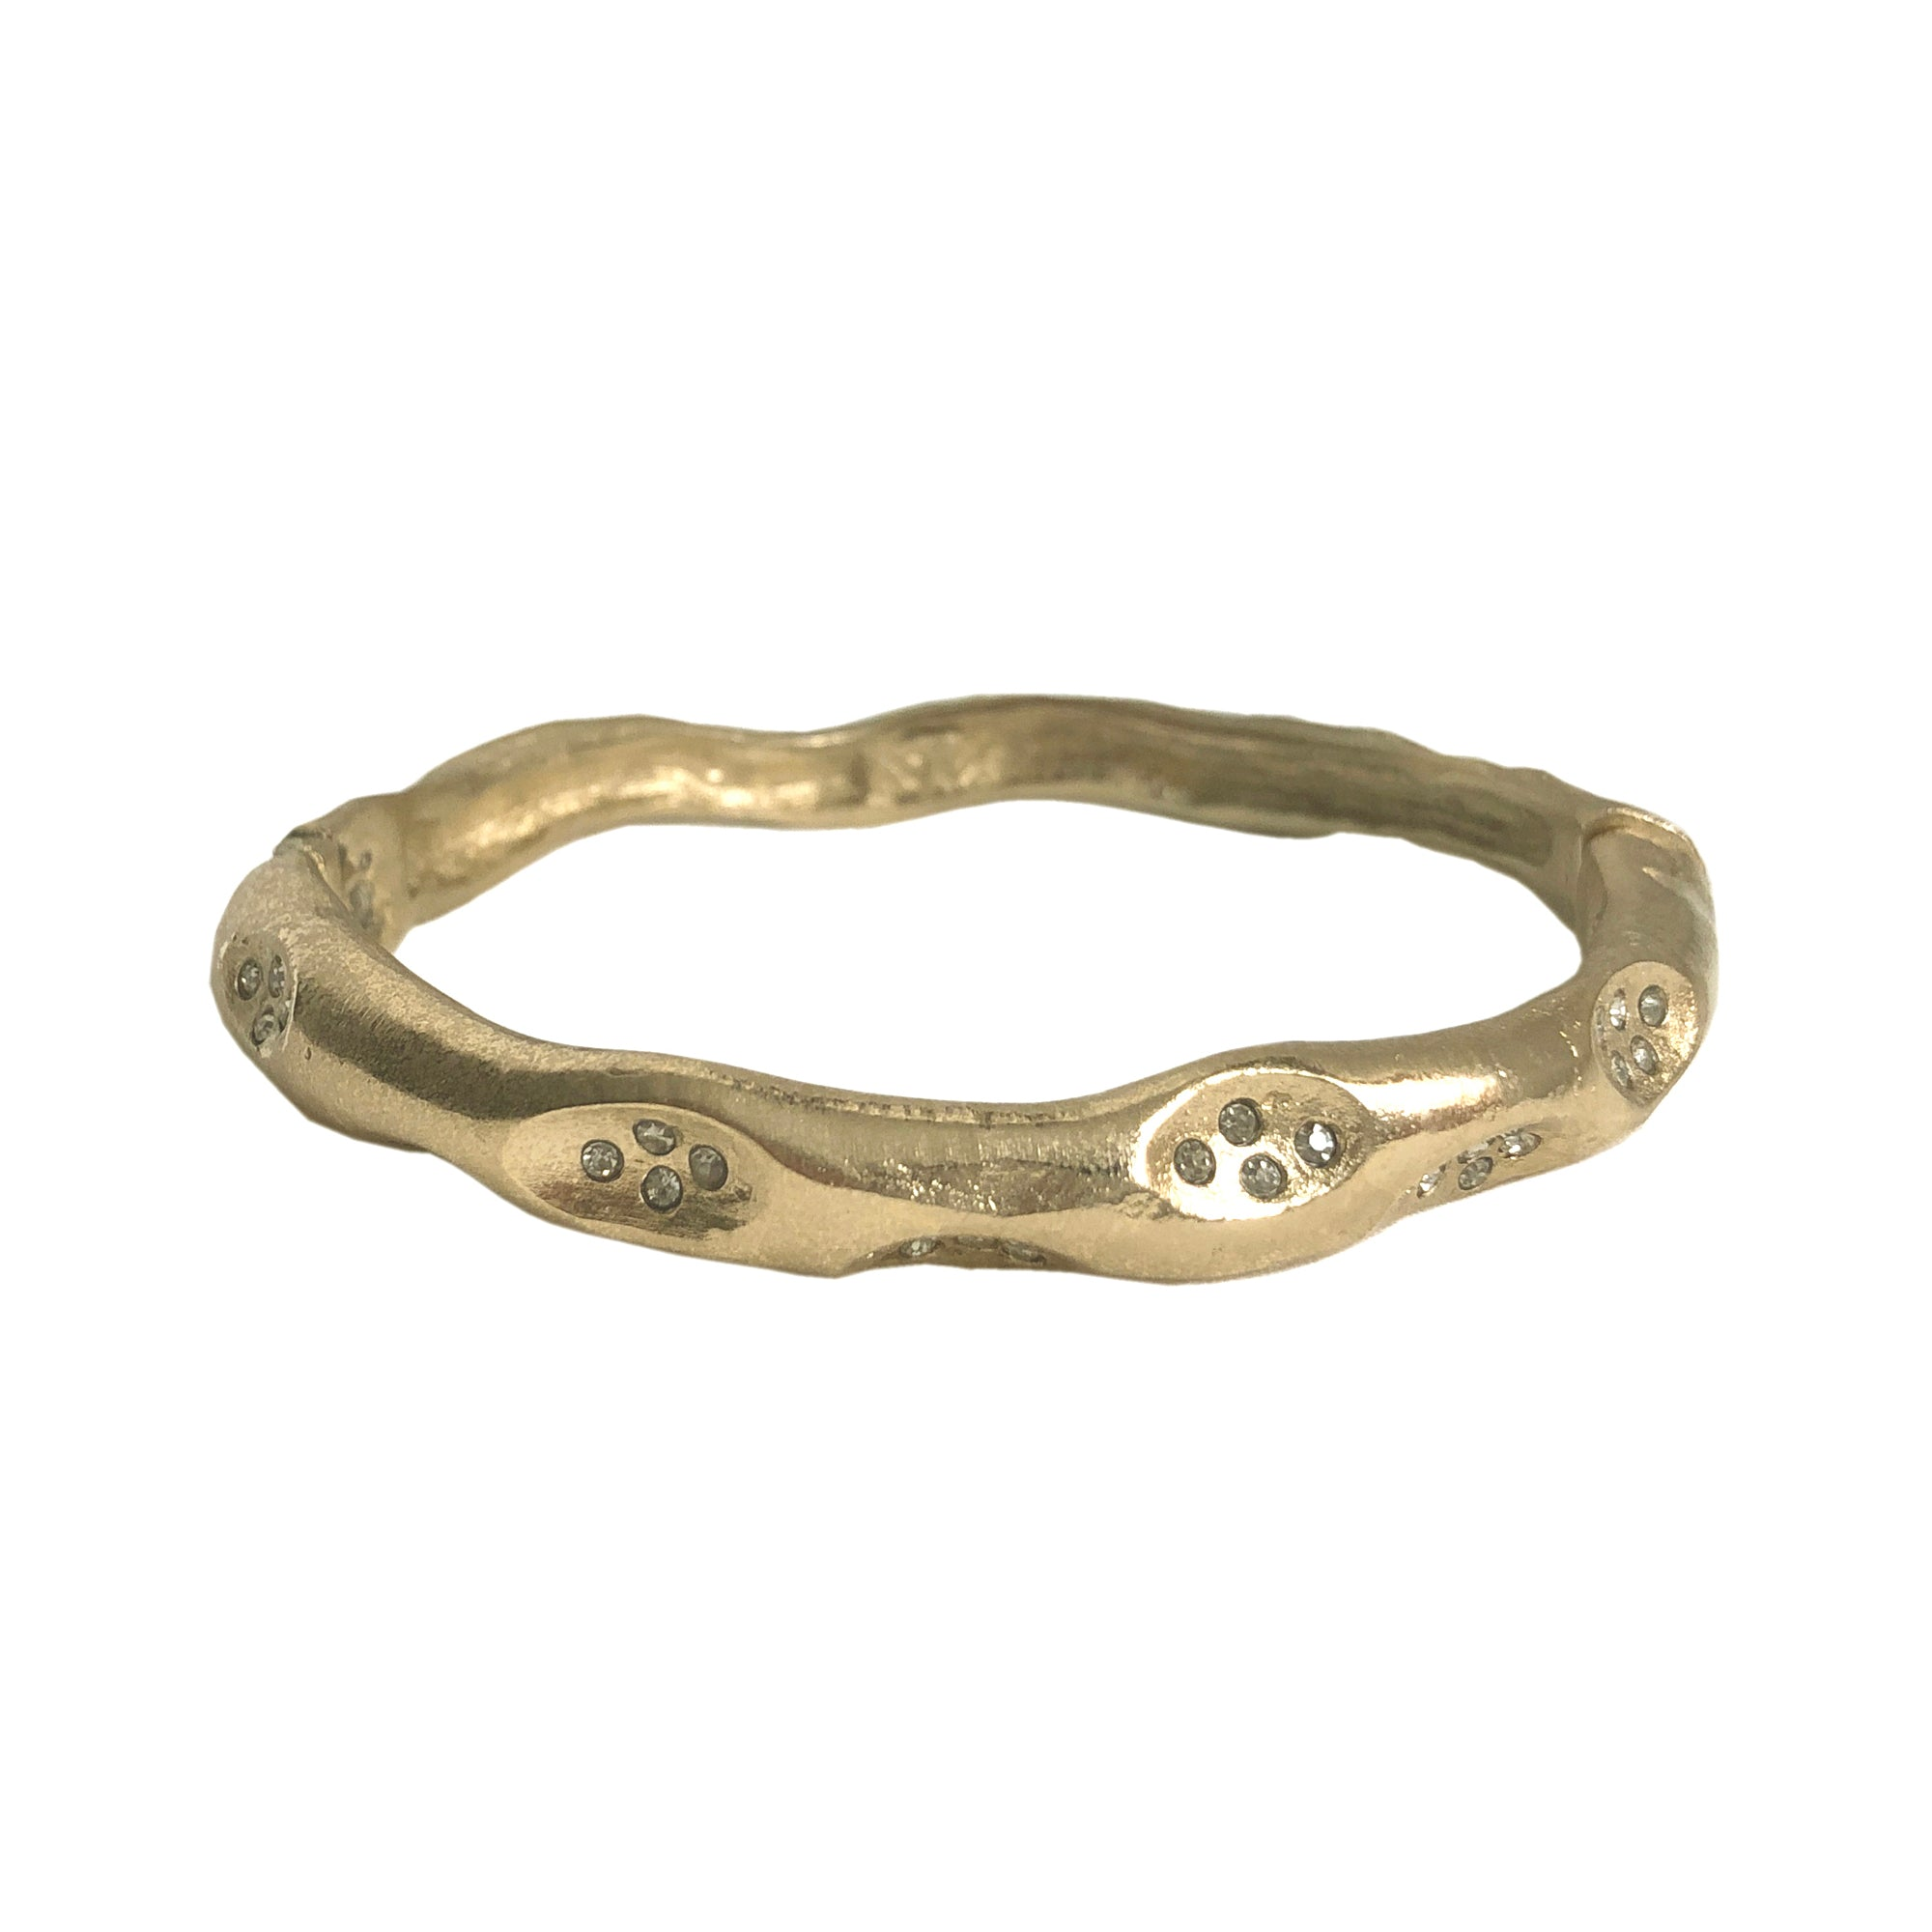 GOLD THIN IMPRESSION BANGLE